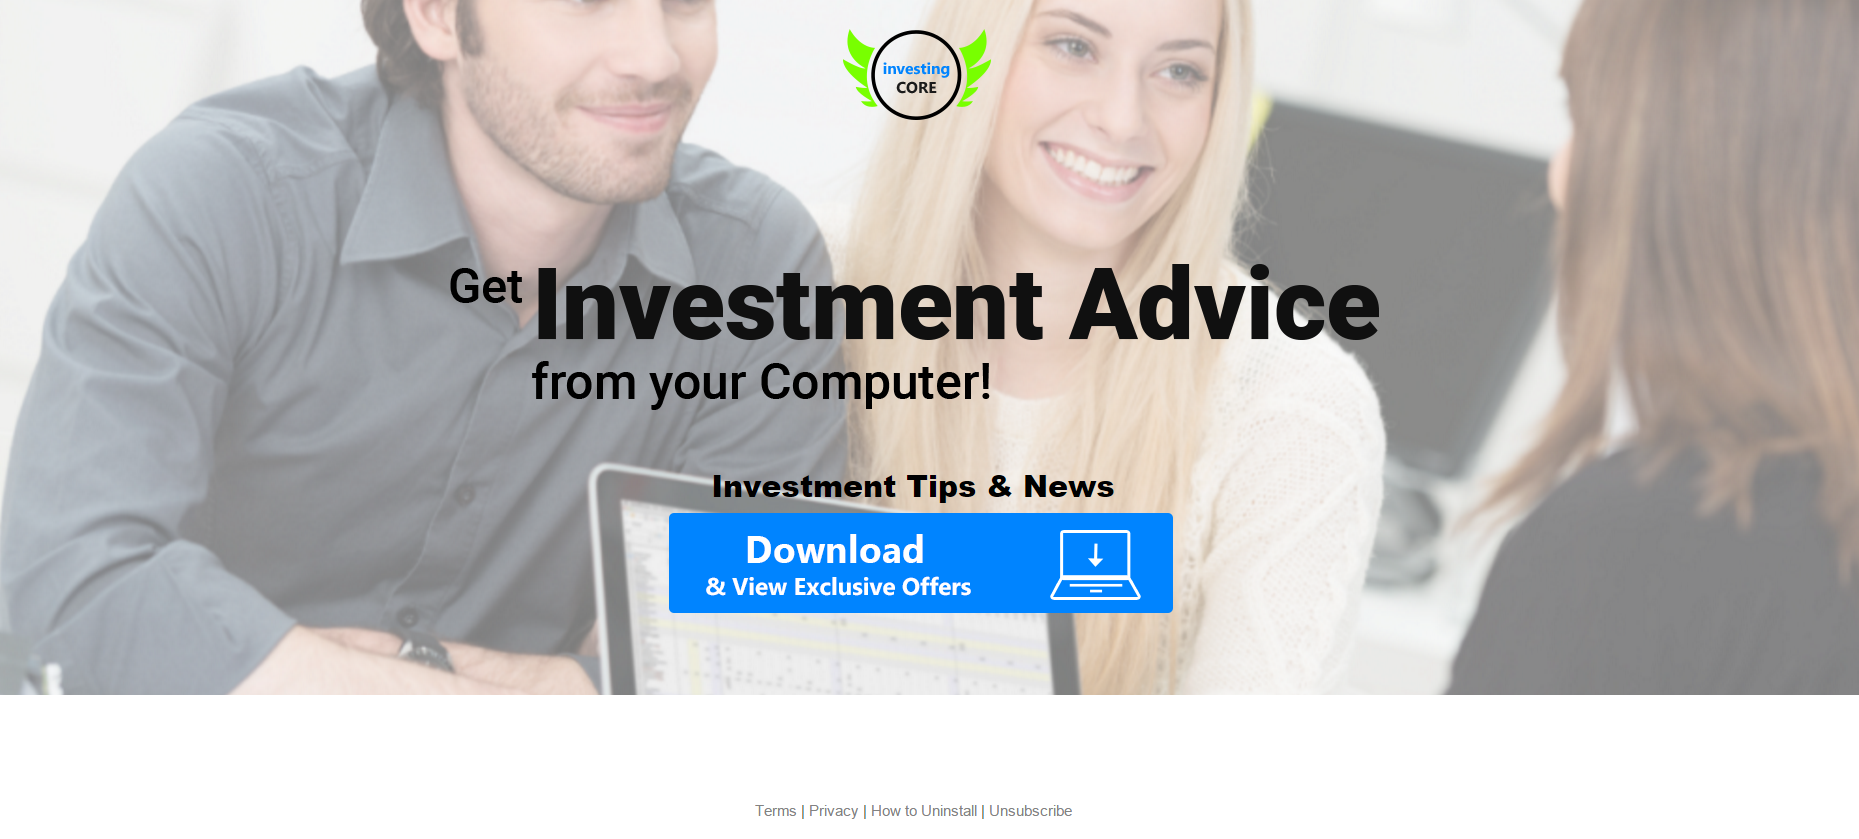 ads by Investing Core